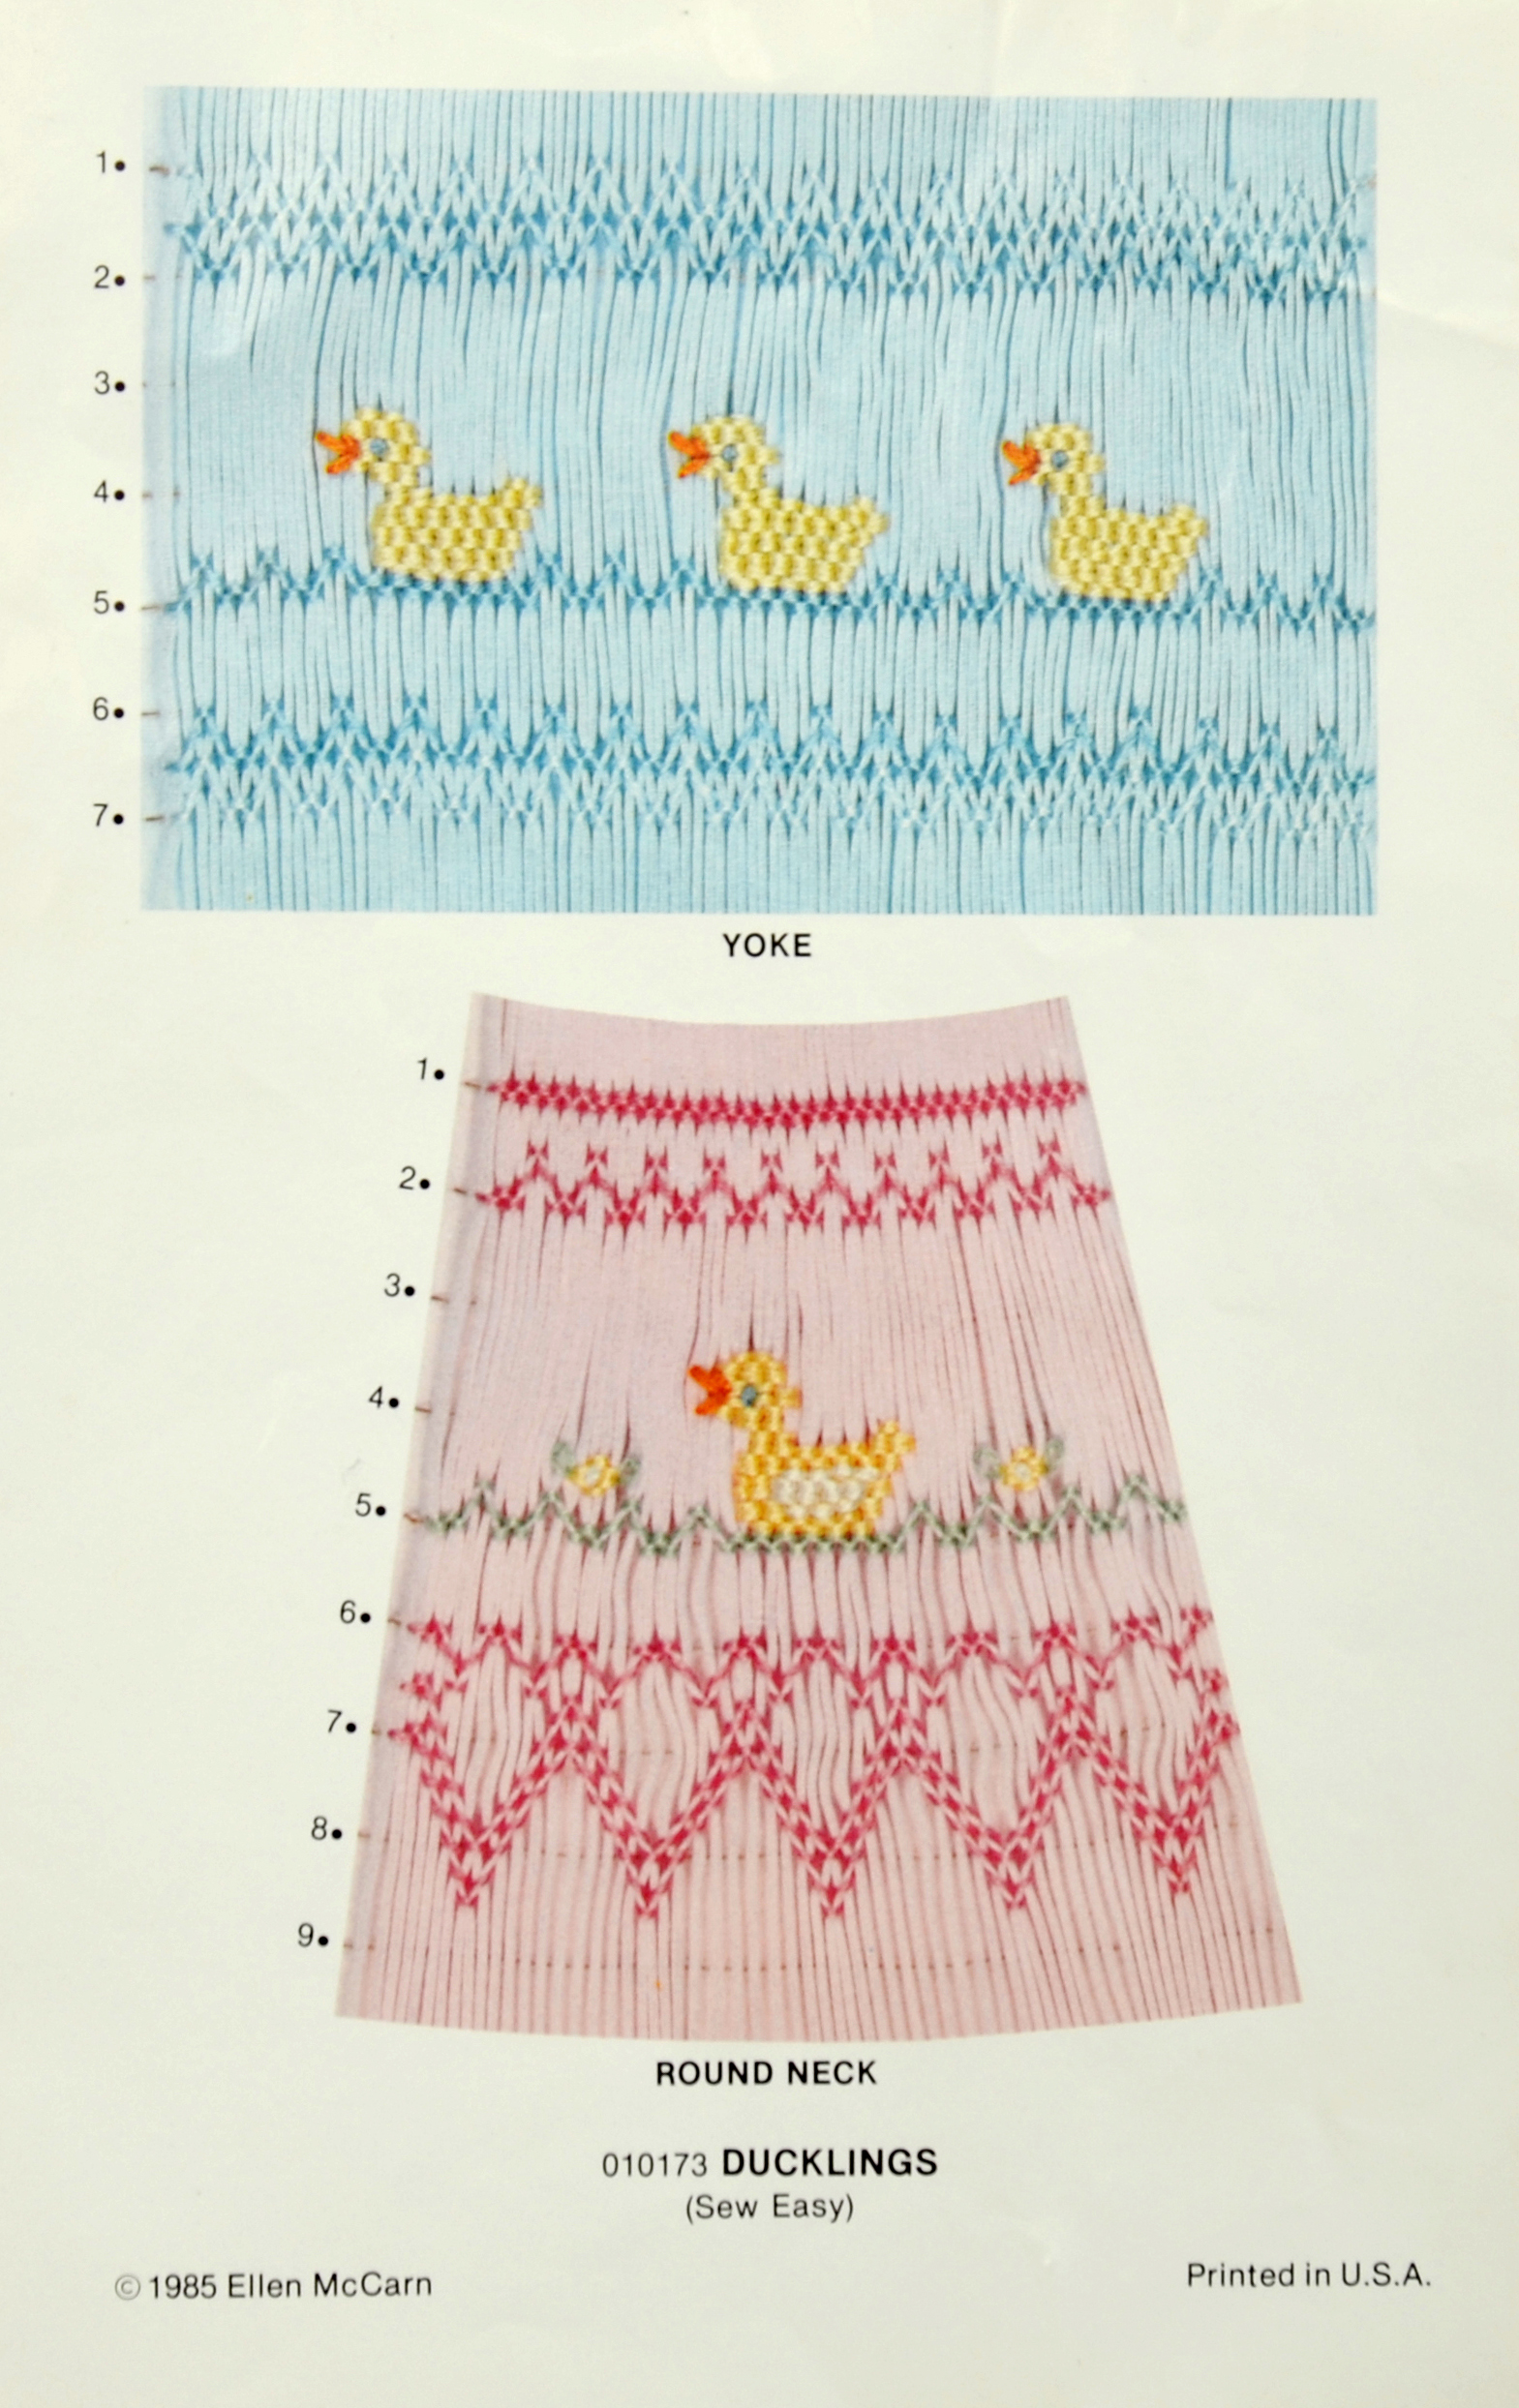 Ducklings, Smocking Plate by Ellen McCarn